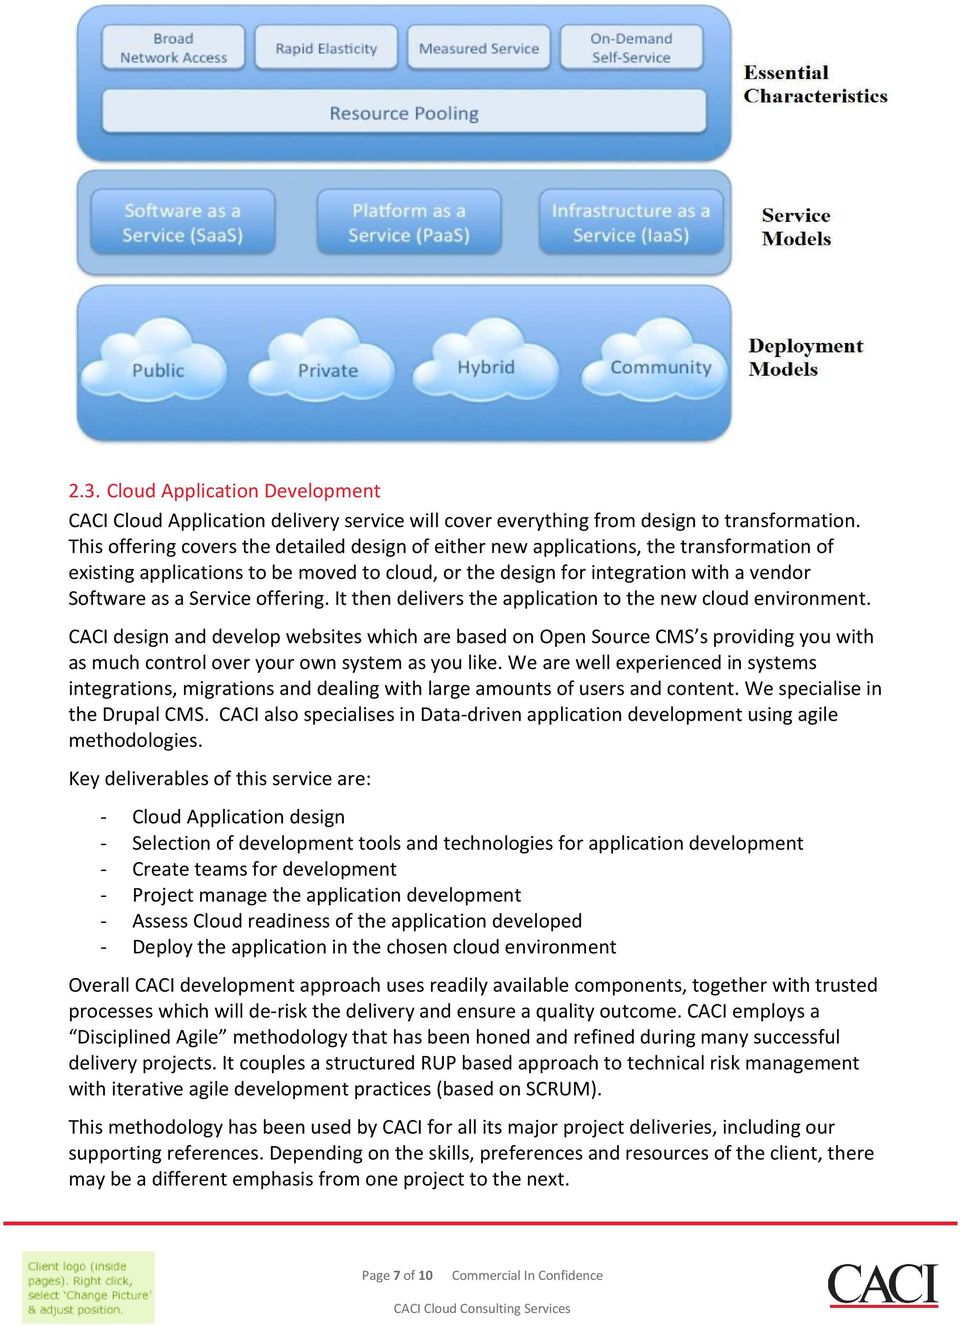 Service offering. It then delivers the application to the new cloud environment.